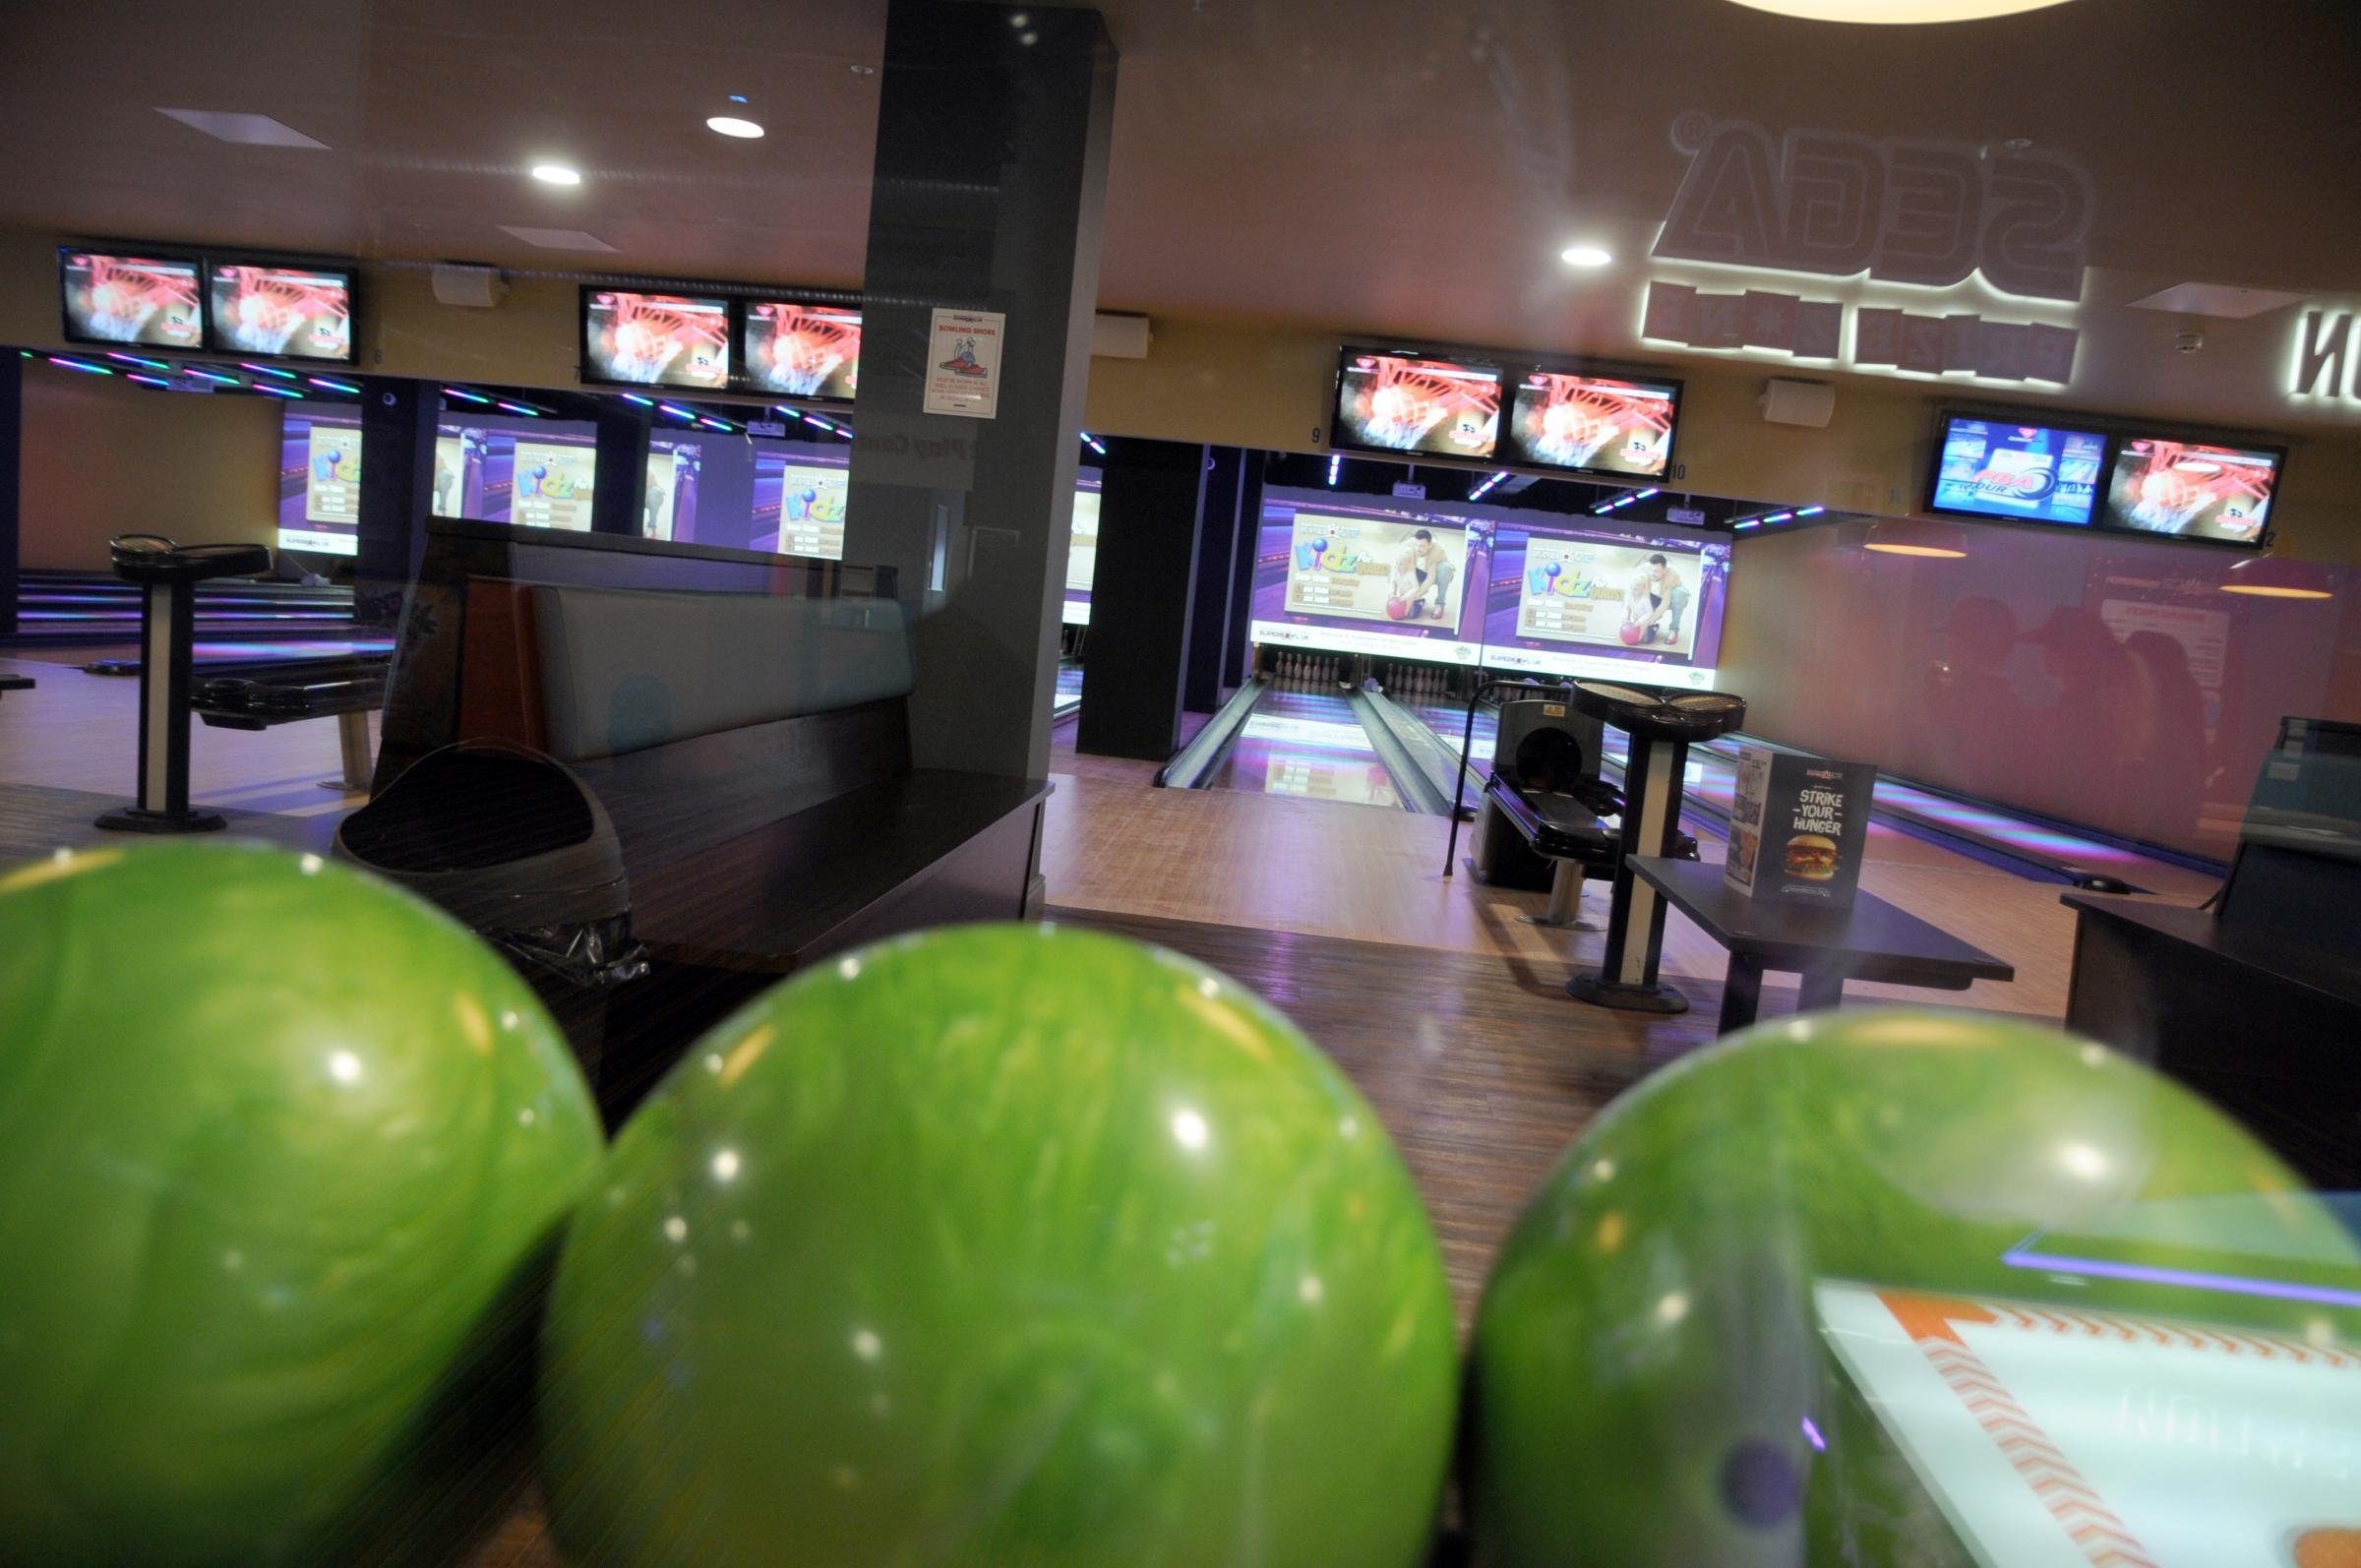 Your guide to Superbowl, the new Golden Square bowling alley